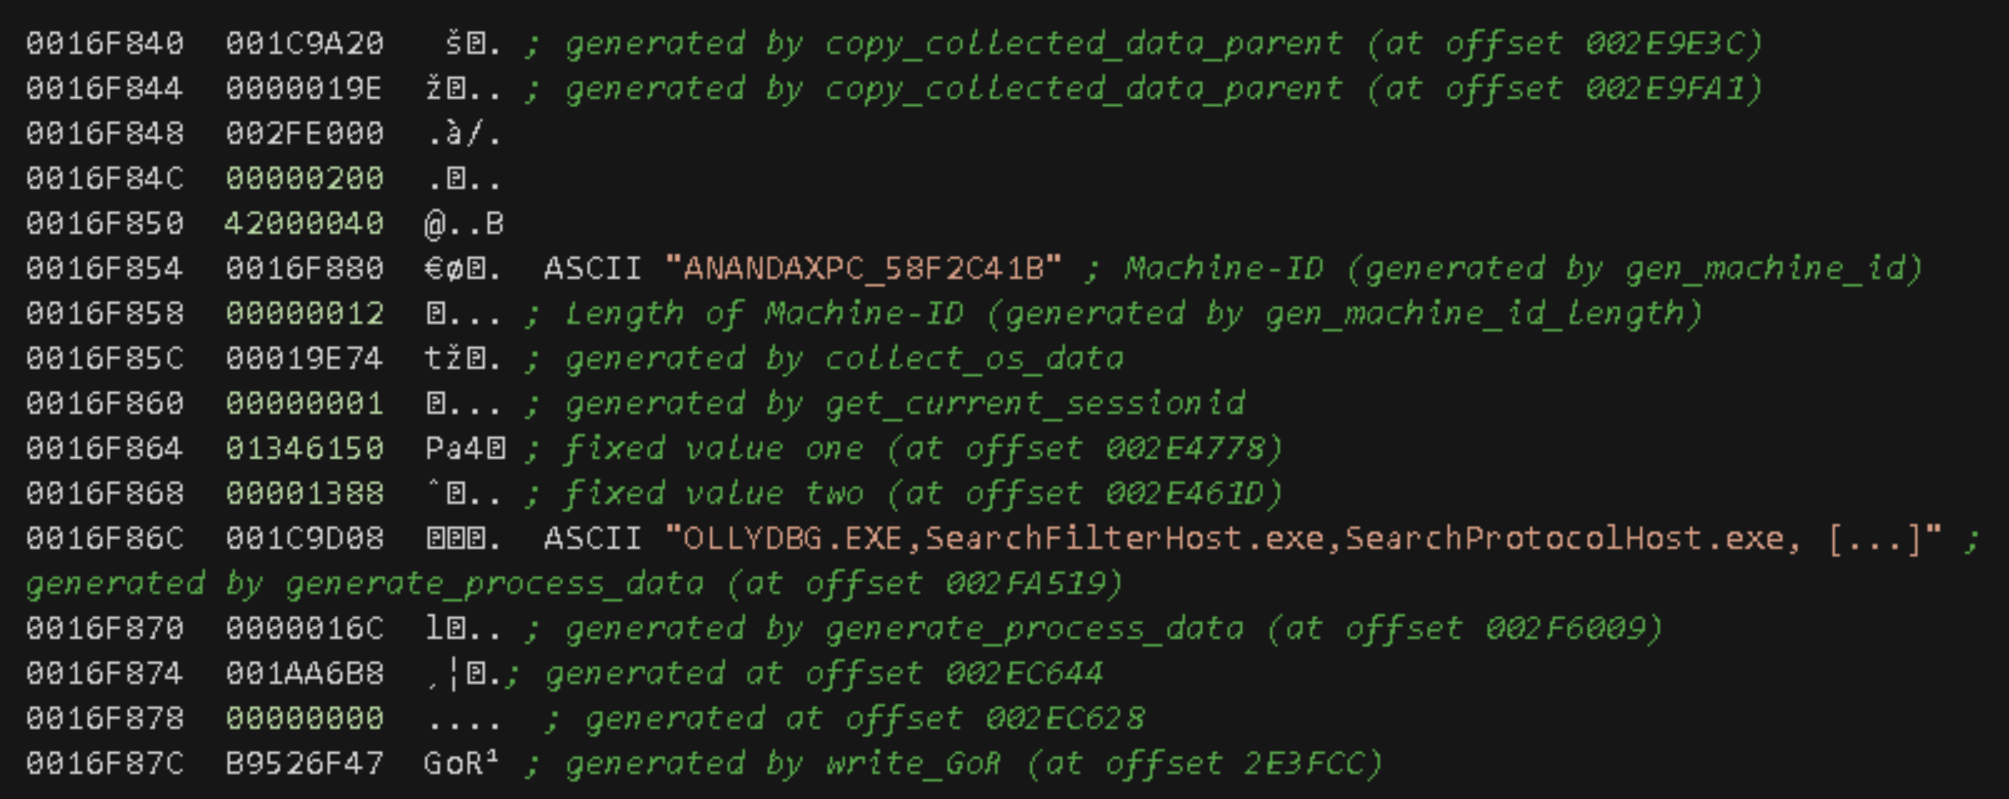 Figure 10. Stack-snapshot including collected data and the data generation functions references.